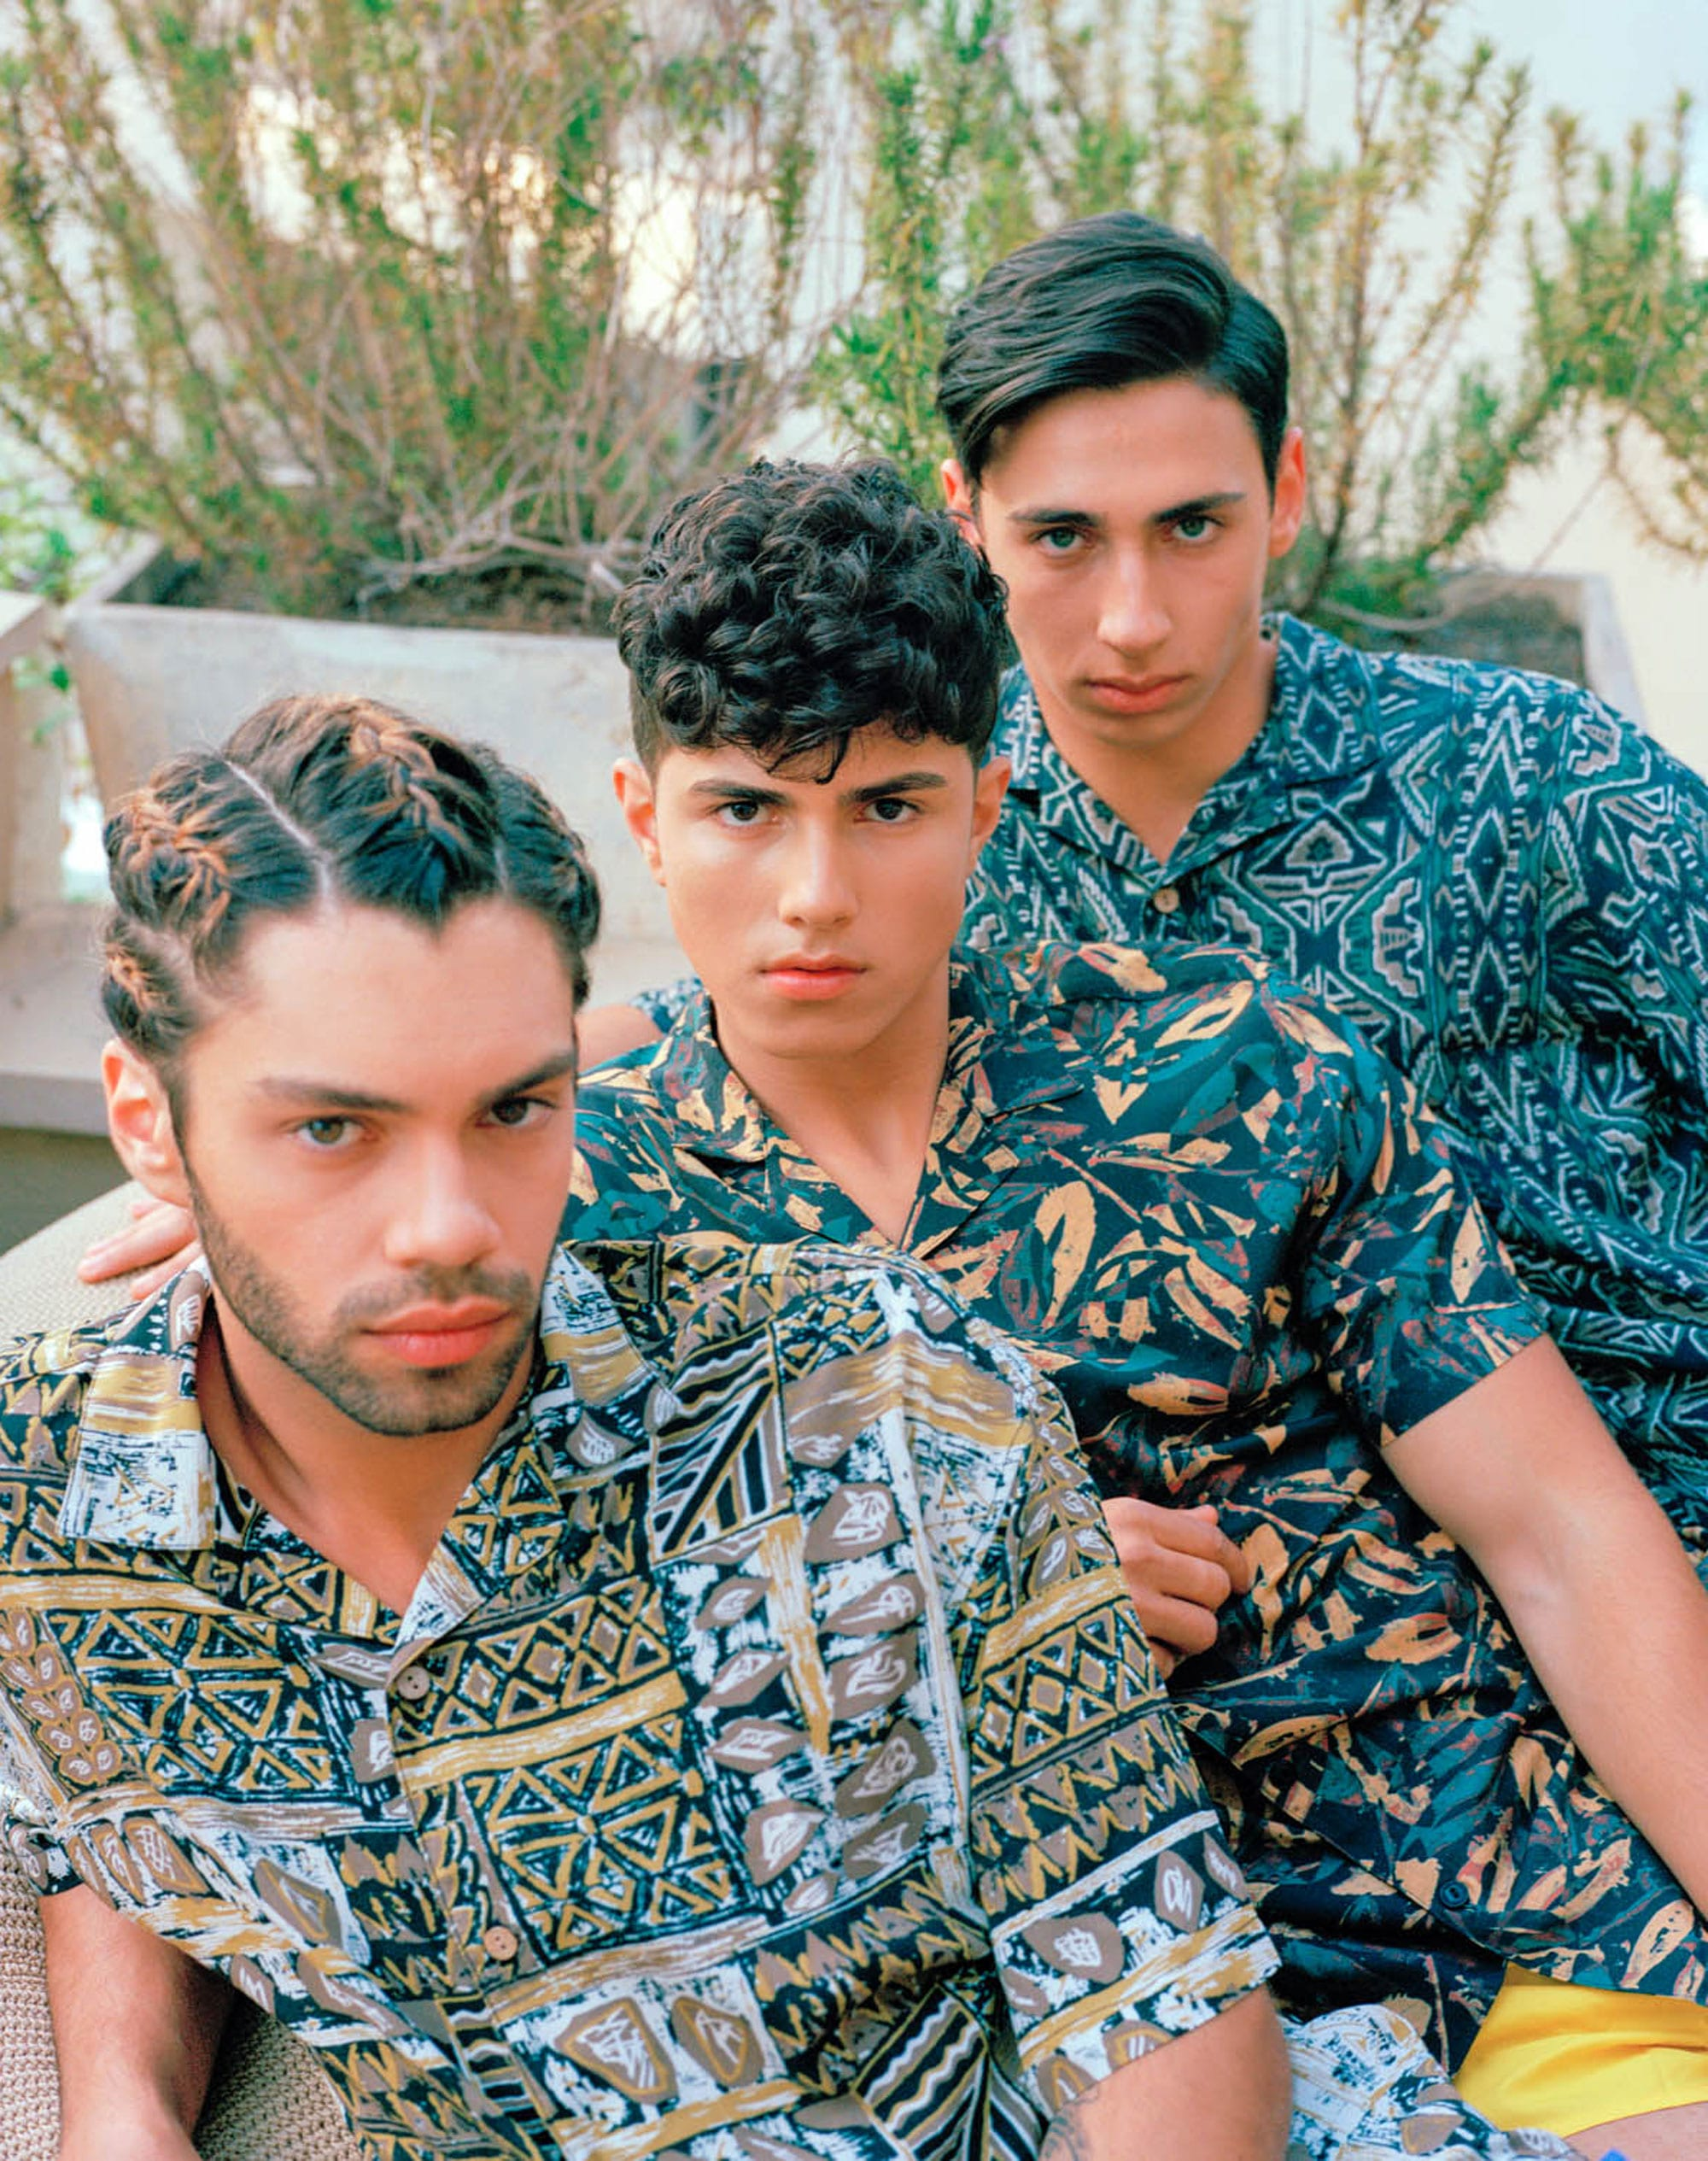 Shirts: pull&bear, Short: Renuar Photographer: Angel Chai Arviv, Styling: Tal Bouhinin, Makeup Artist: Iris Hatzavin, Esther Shitrite, Hair Stylist: Lior Krispekin, Models: Ariel Shuliain, Amir Netzerin, Or Dvirin for Passion Management -15